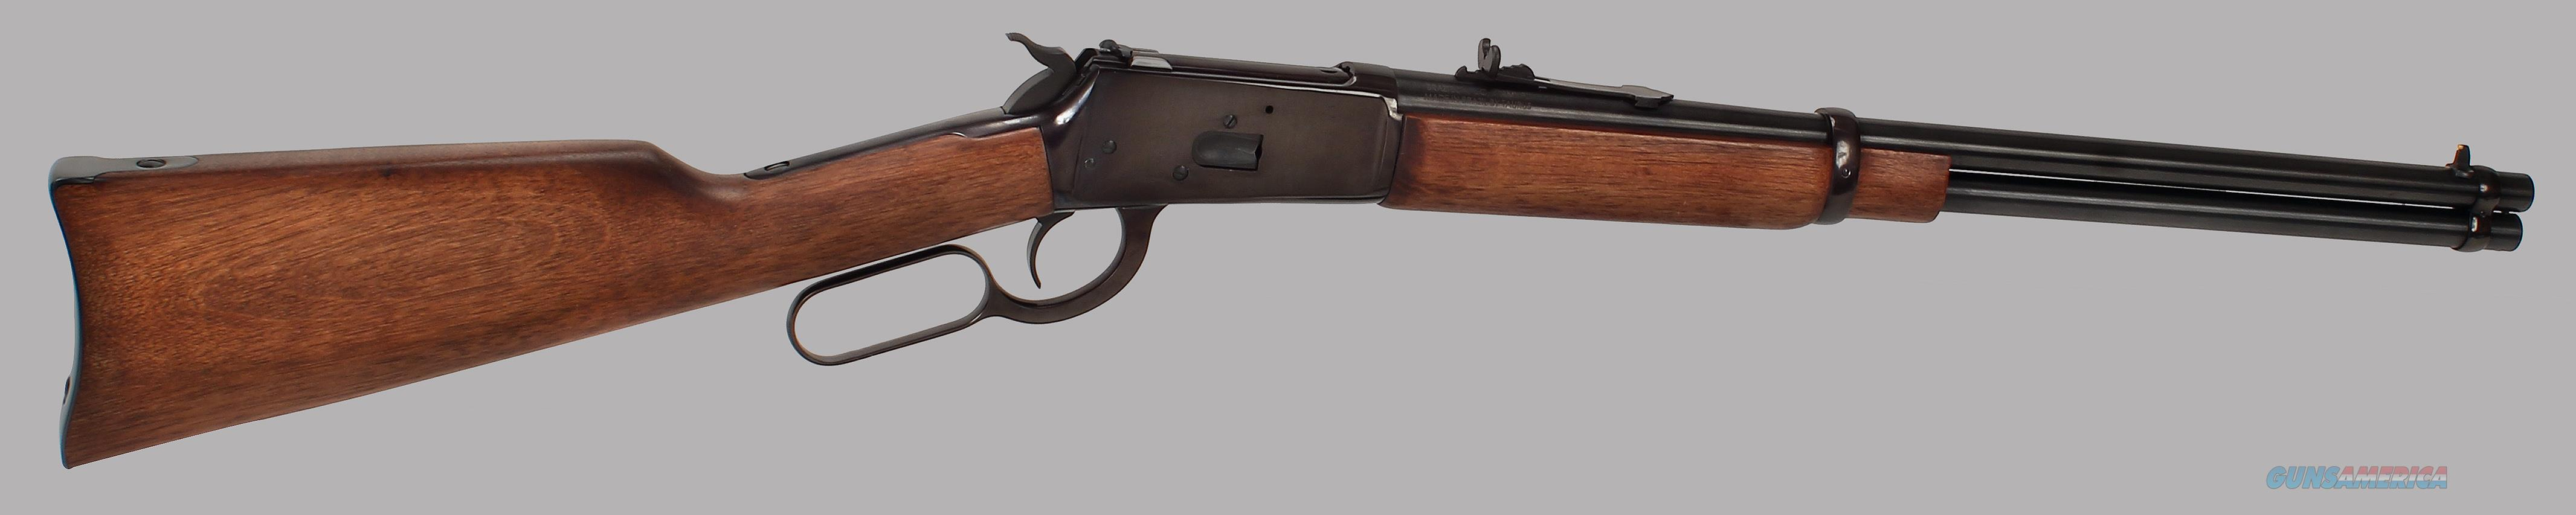 Rossi (Barztech) Lever Action 45LC Rifle  Guns > Rifles > Rossi Rifles > Cowboy